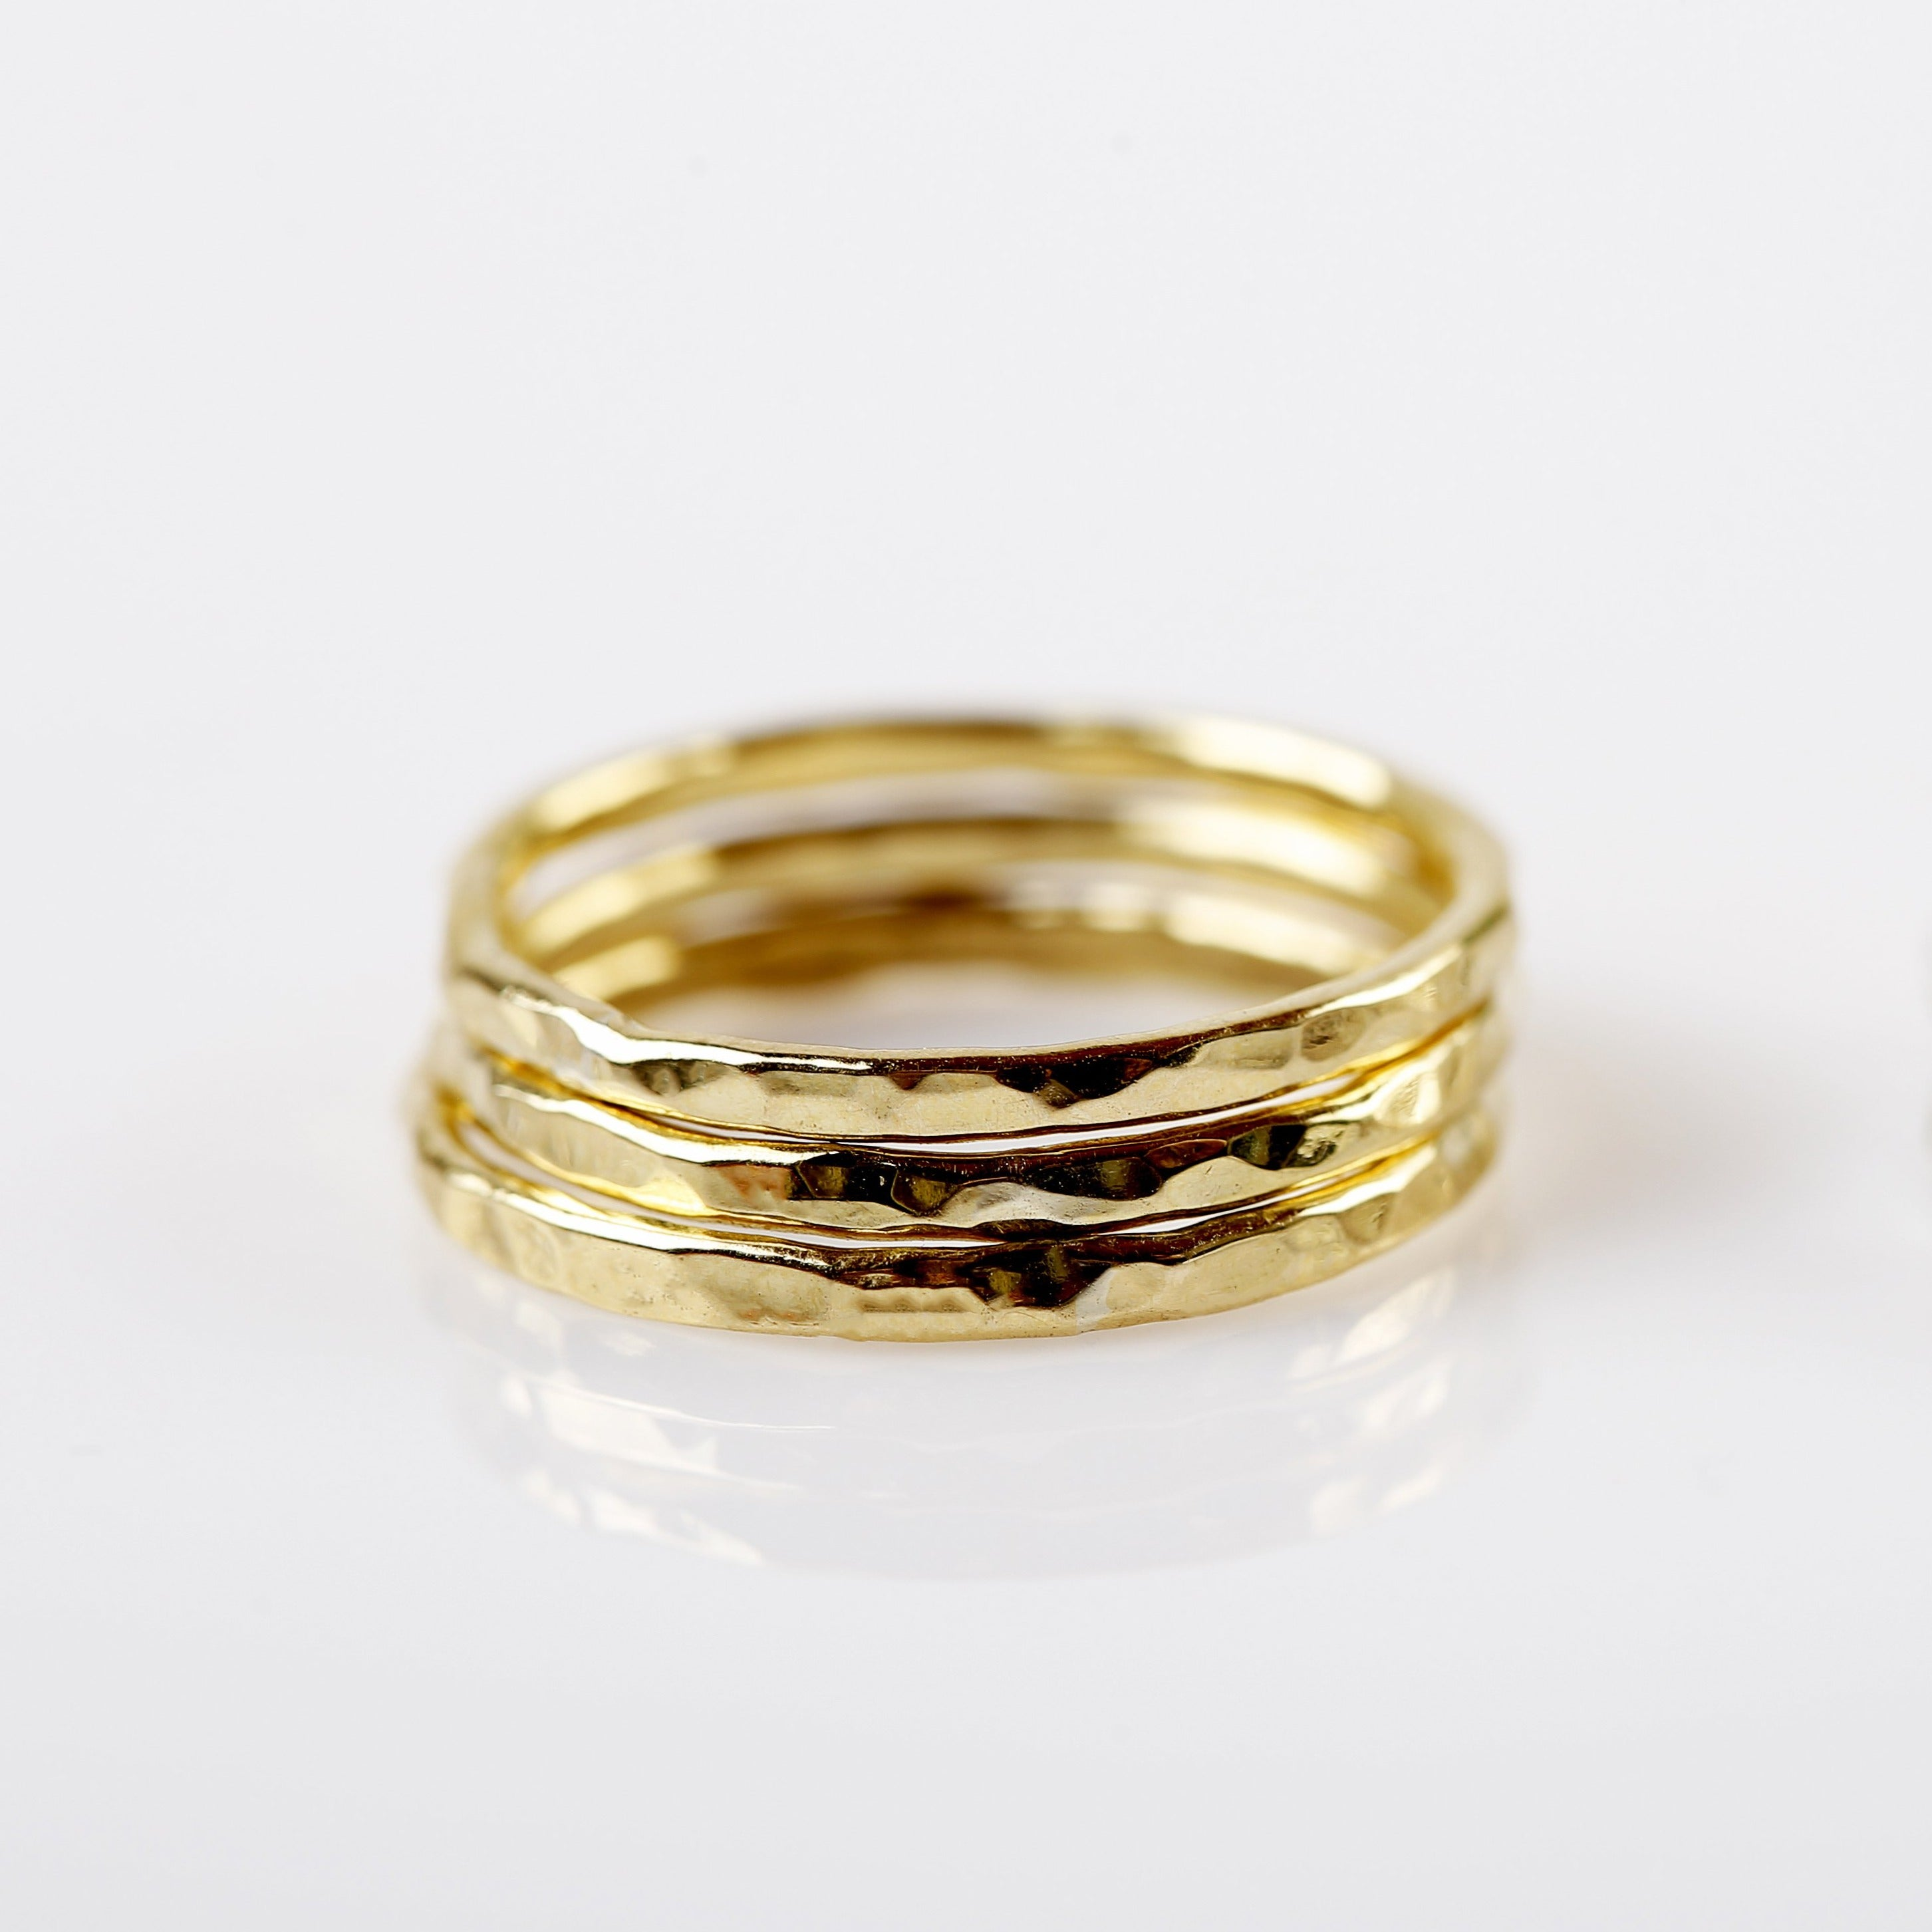 Textured Brass stack rings - set of 3